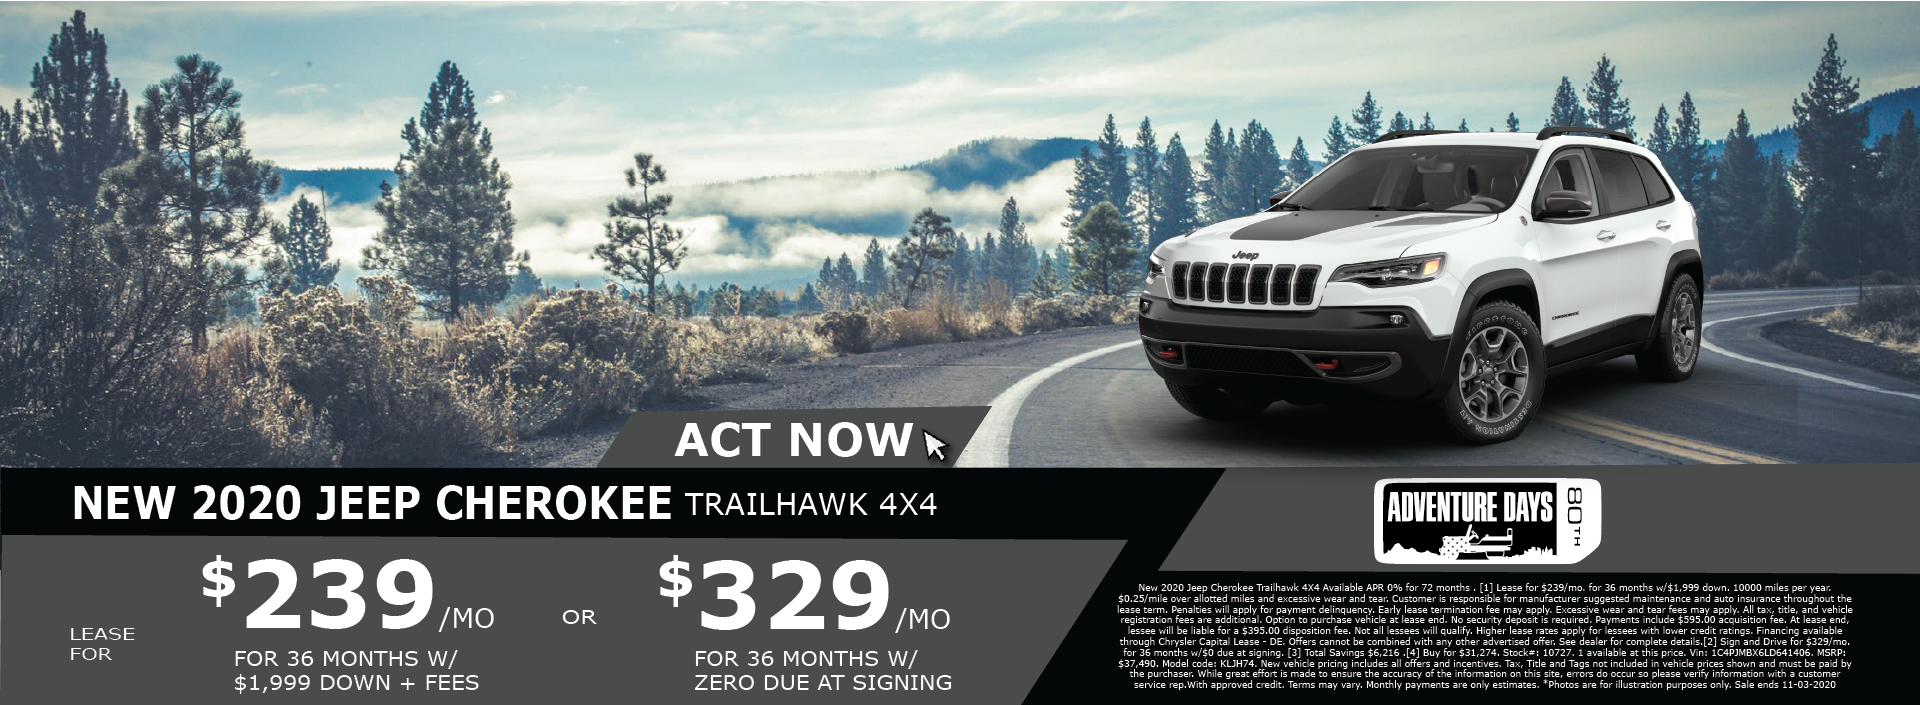 Whitewater – Jeep Cherokee October 2020